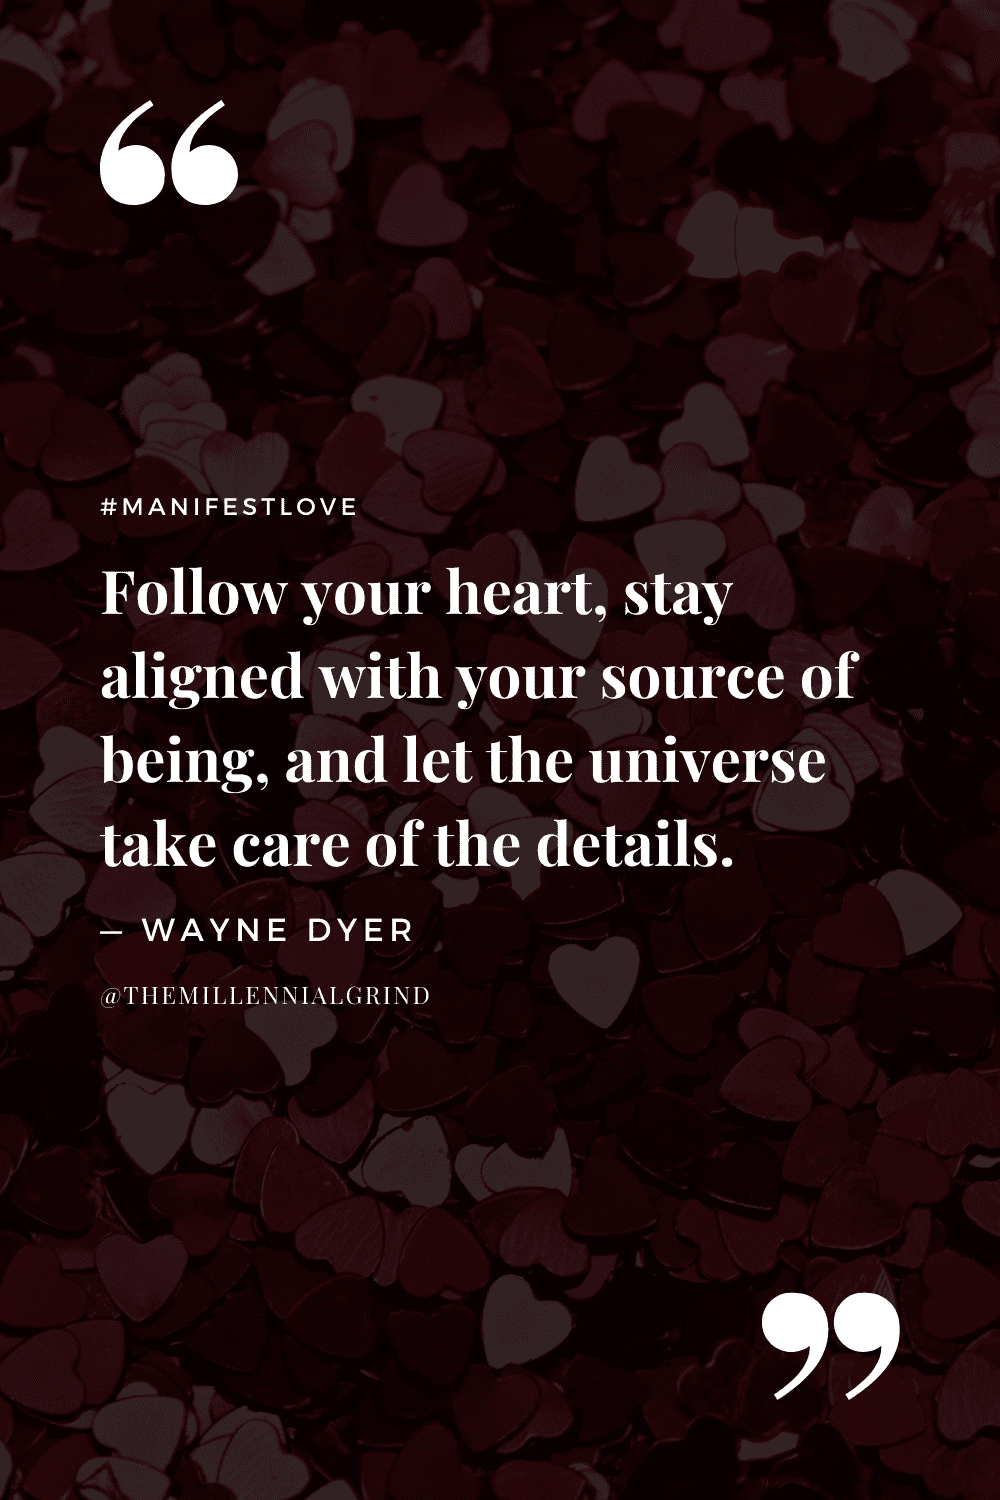 """""""Follow your heart, stay aligned with your source of being, and let the universe take care of the details."""" – Wayne Dyer"""